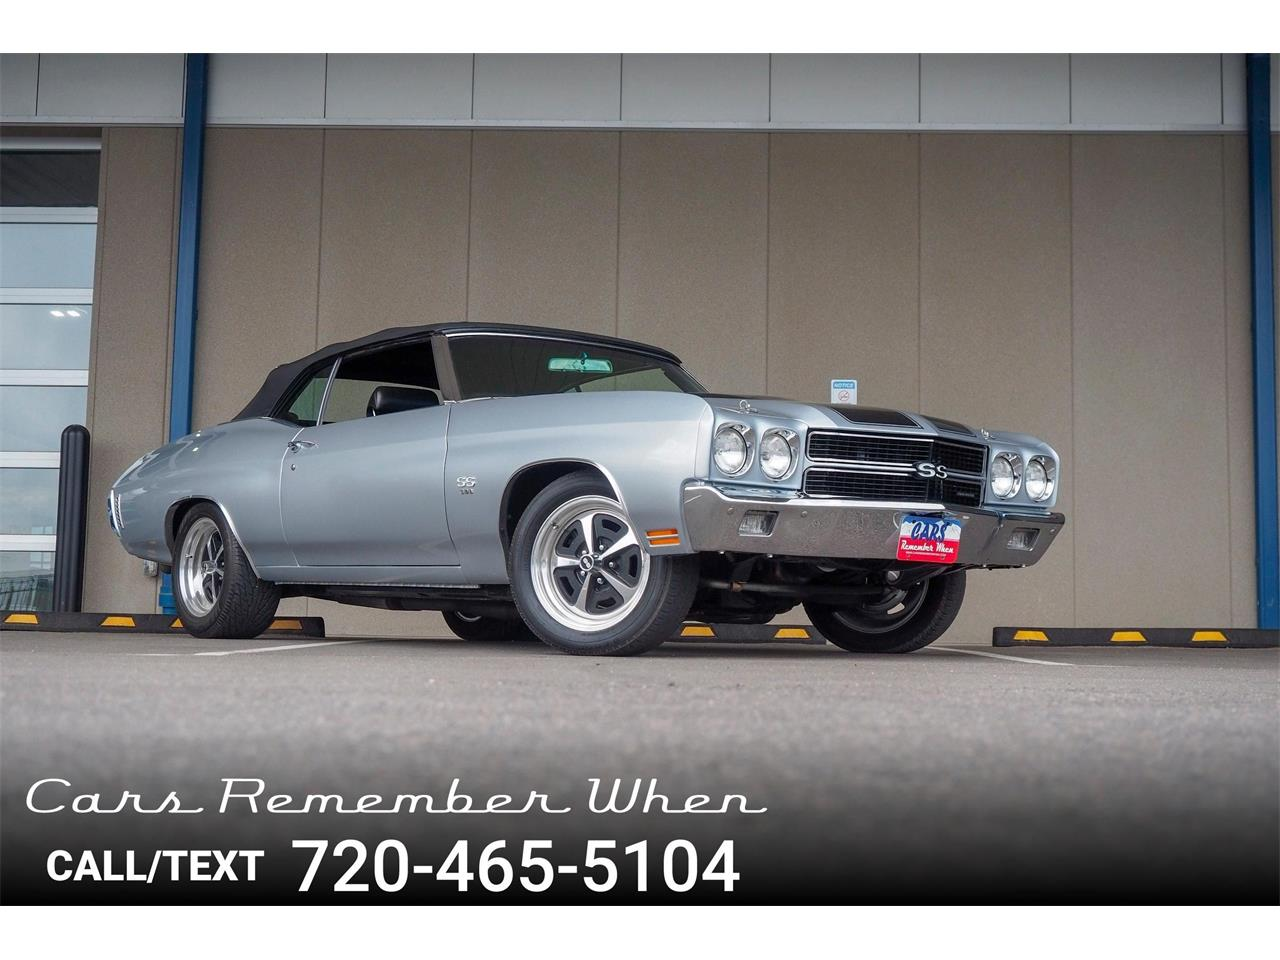 For Sale: 1970 Chevrolet Chevelle in Englewood, Colorado